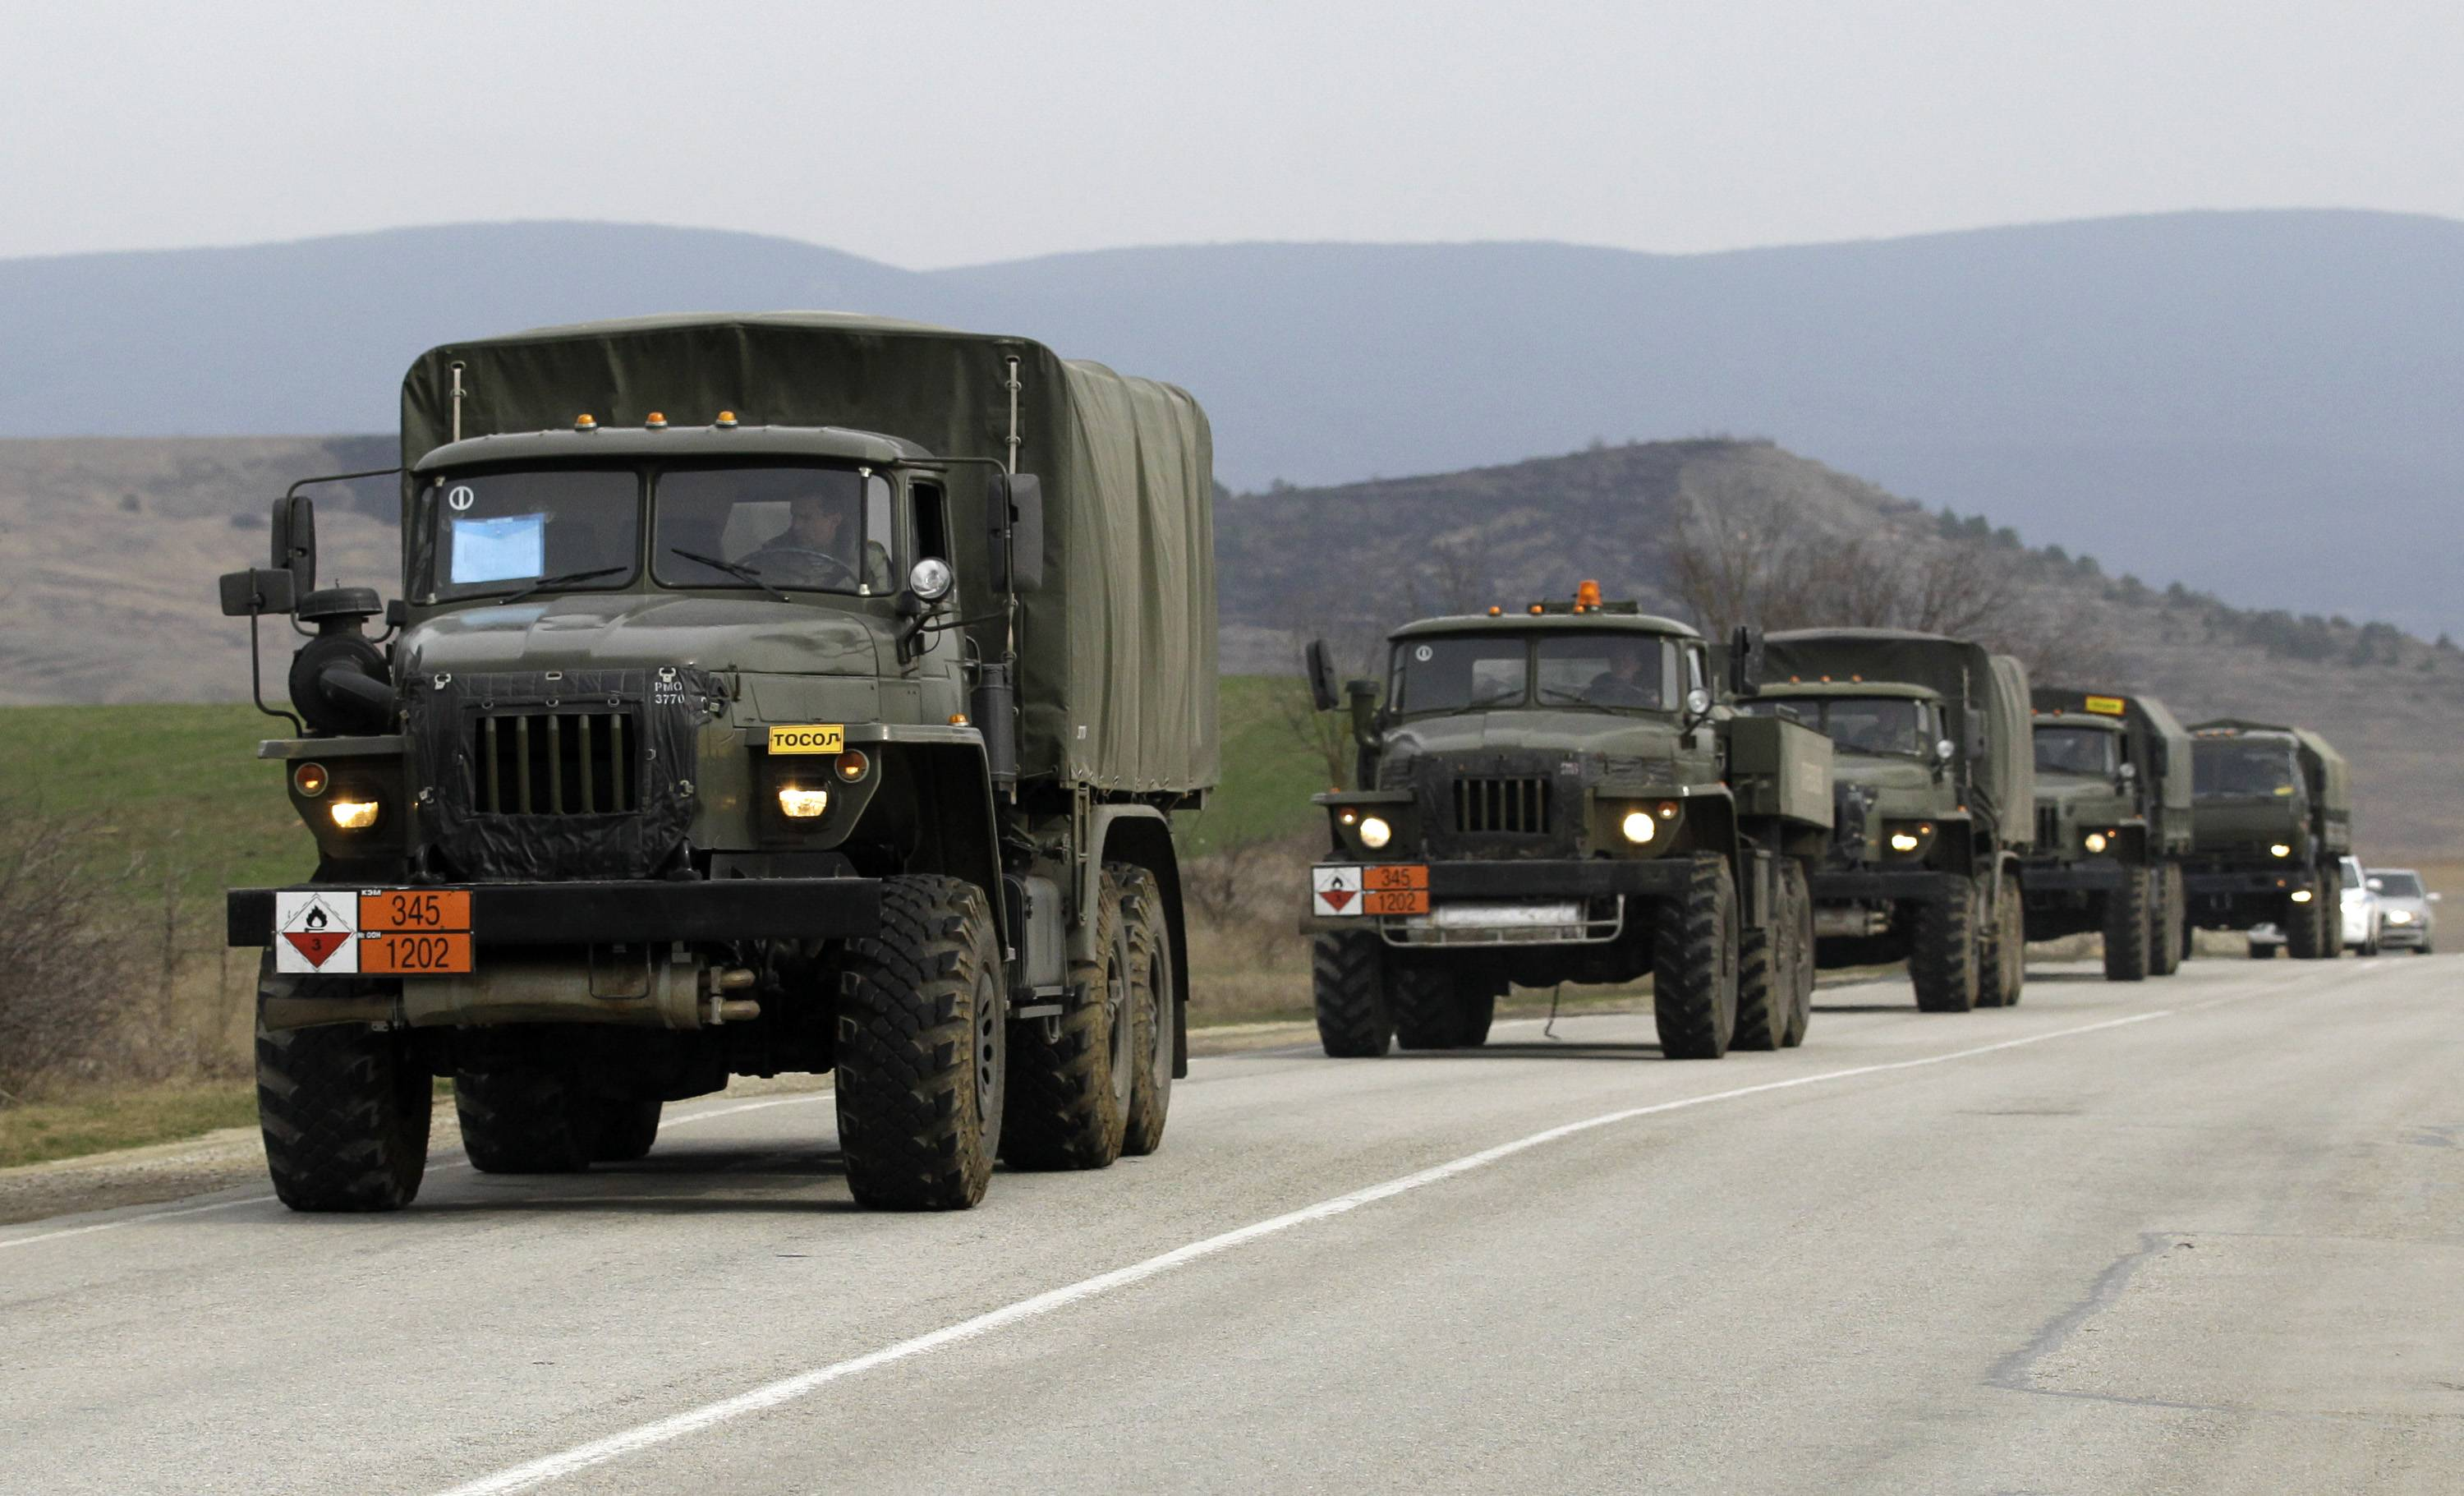 A convoy of military vehicles bearing no license plates travels on the road from Feodosia to Simferopol in the Crimea, Ukraine, Saturday, March 8, 2014. More than 60 military trucks bearing no license plate numbers was headed from the eastern city of Feodosia toward the city of Simferopol, the regional capital.